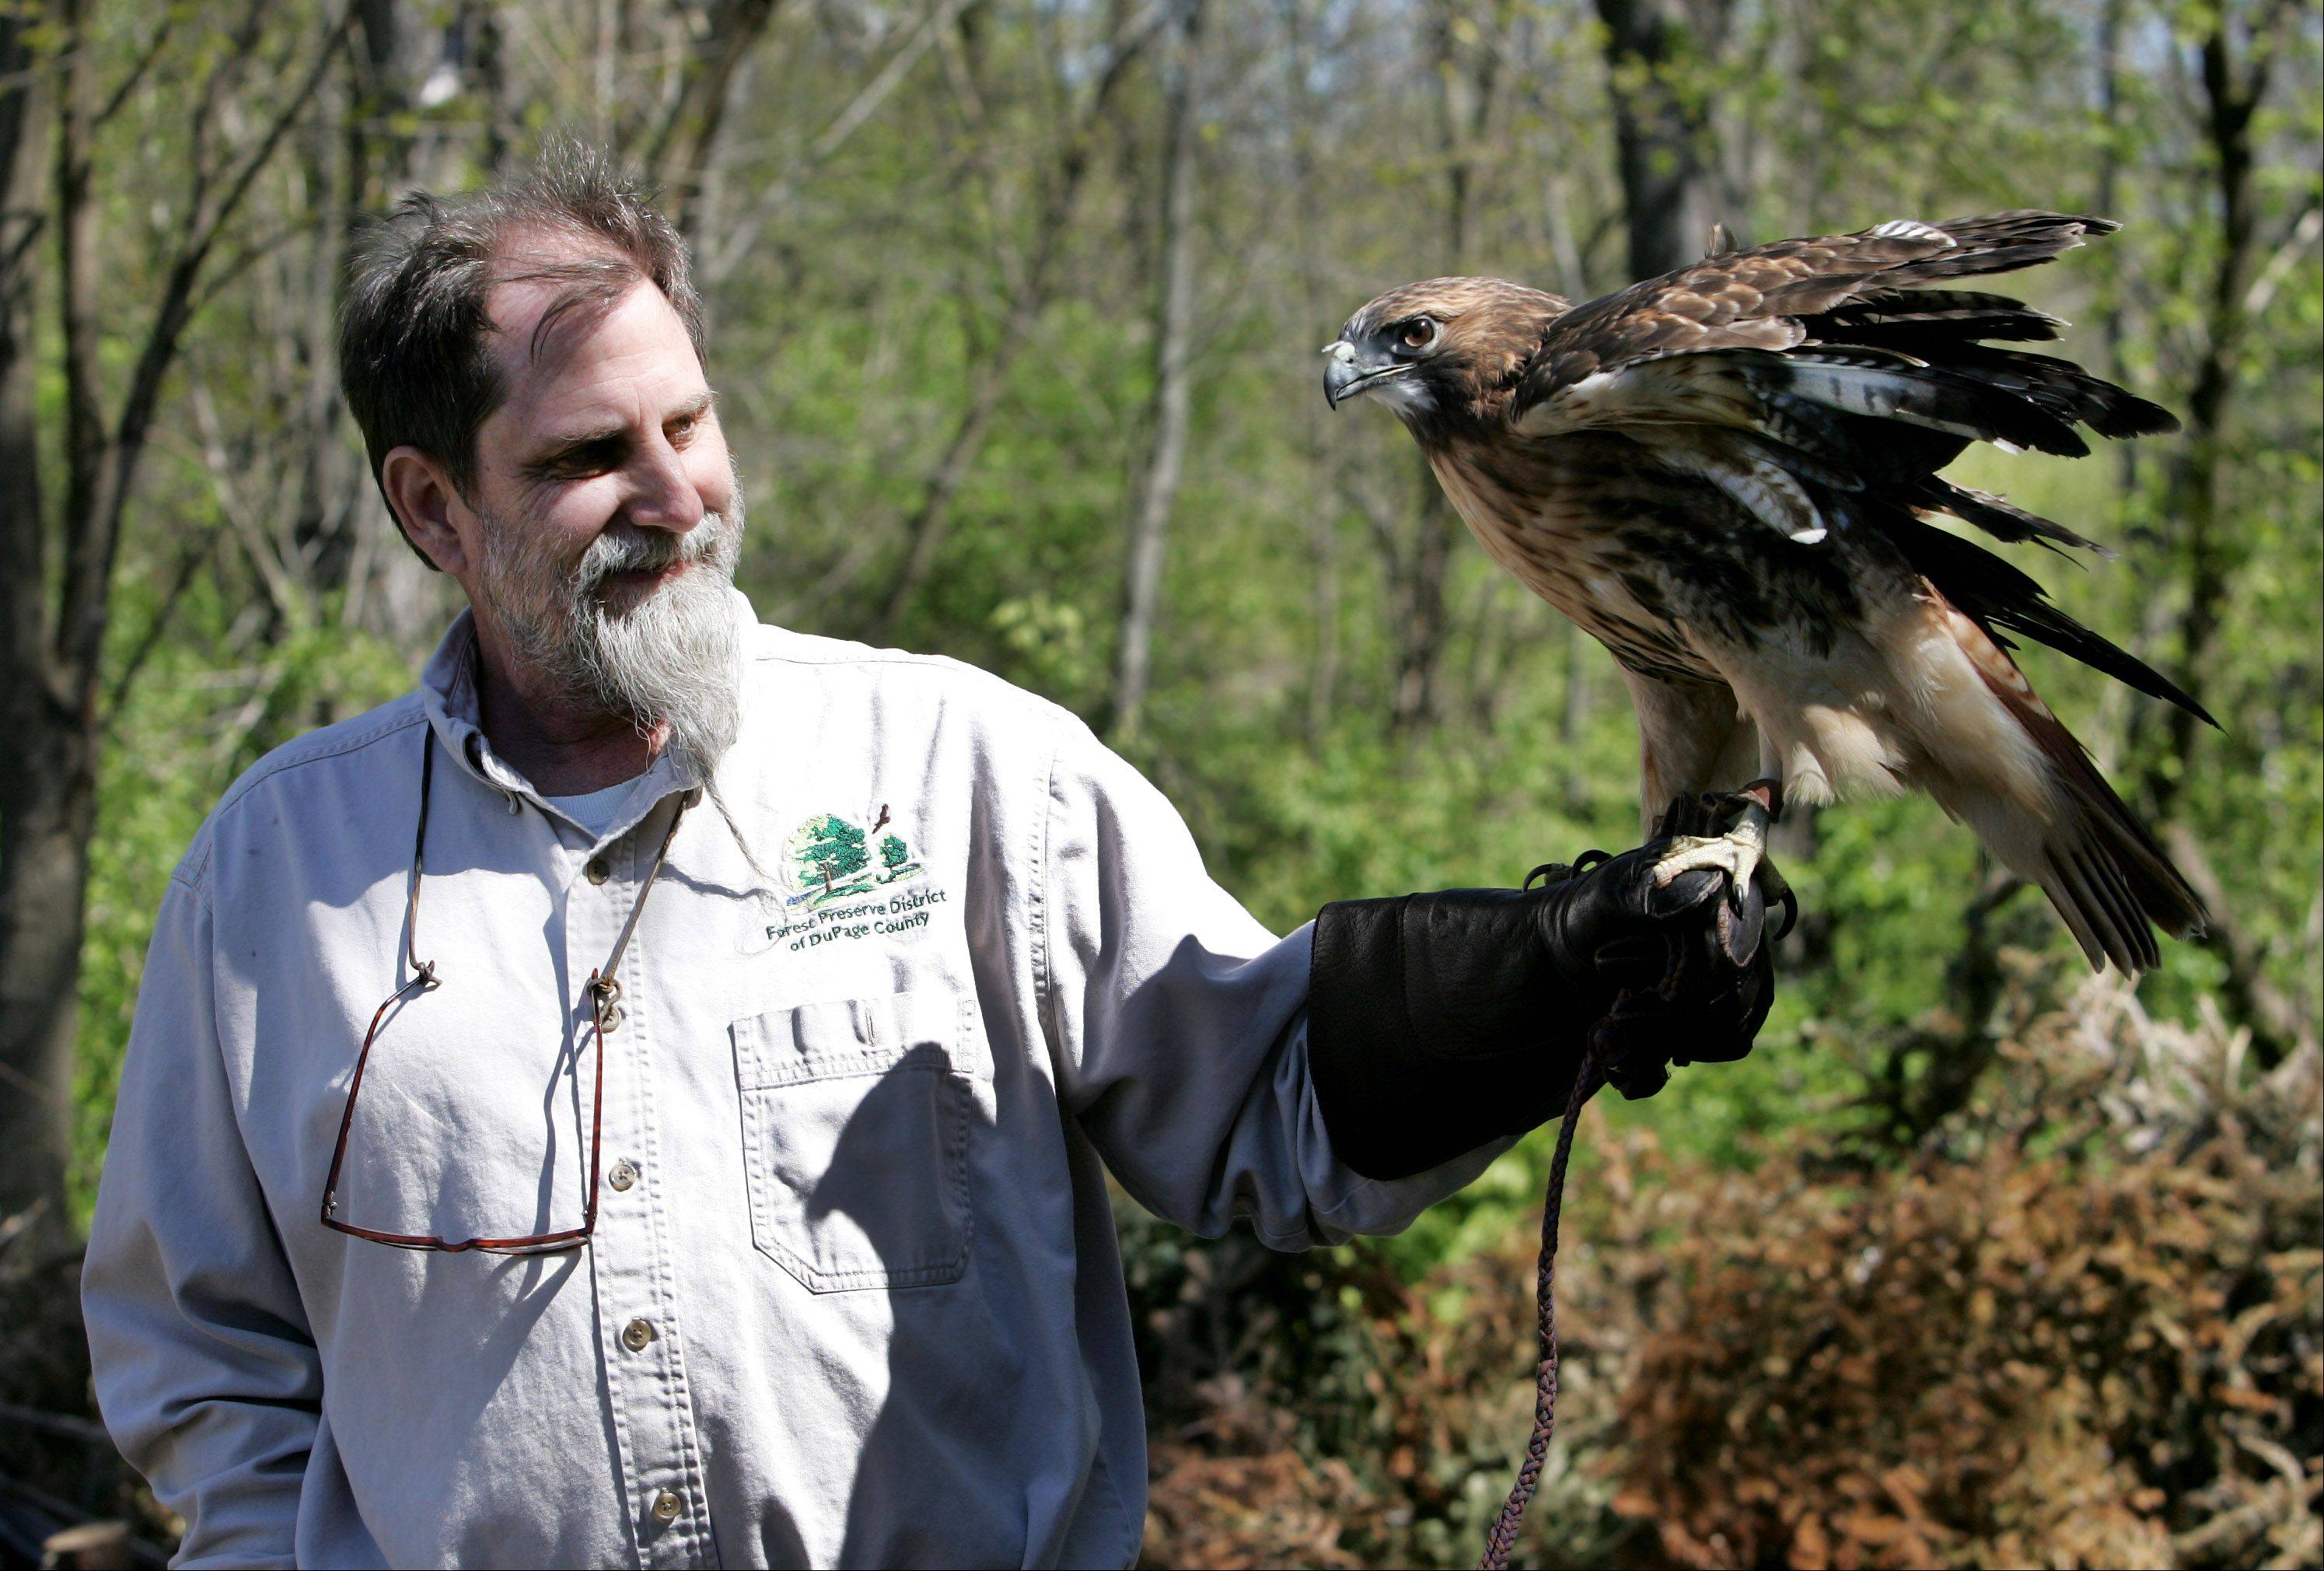 Jack MacRae, naturalist at Willowbrook Wildlife Center in Glen Ellyn, holds Henna, a red-tailed hawk and permanent resident at the center. MacRae works to train the animals used in educational programs, interacts with visitors and studies patterns in nature for the post he has held at Willowbrook since 1996.